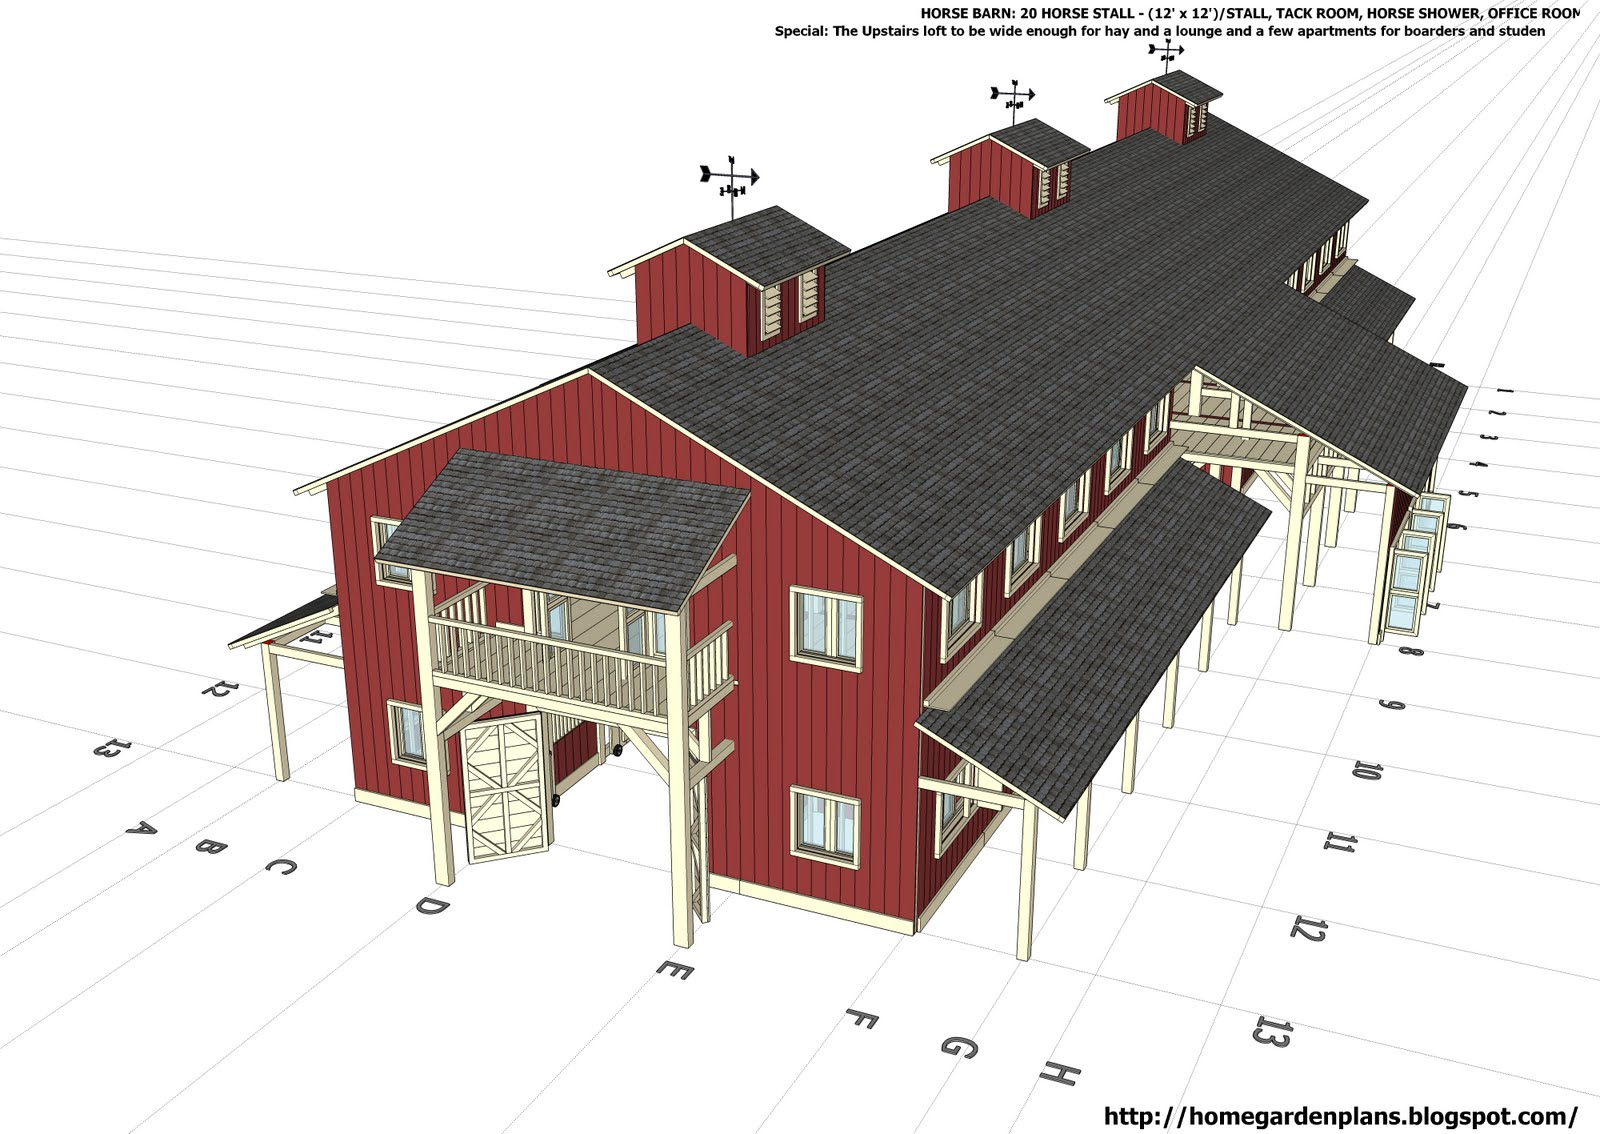 Curtis pdf plans free pole barn plans with loft for Free pole barn plans